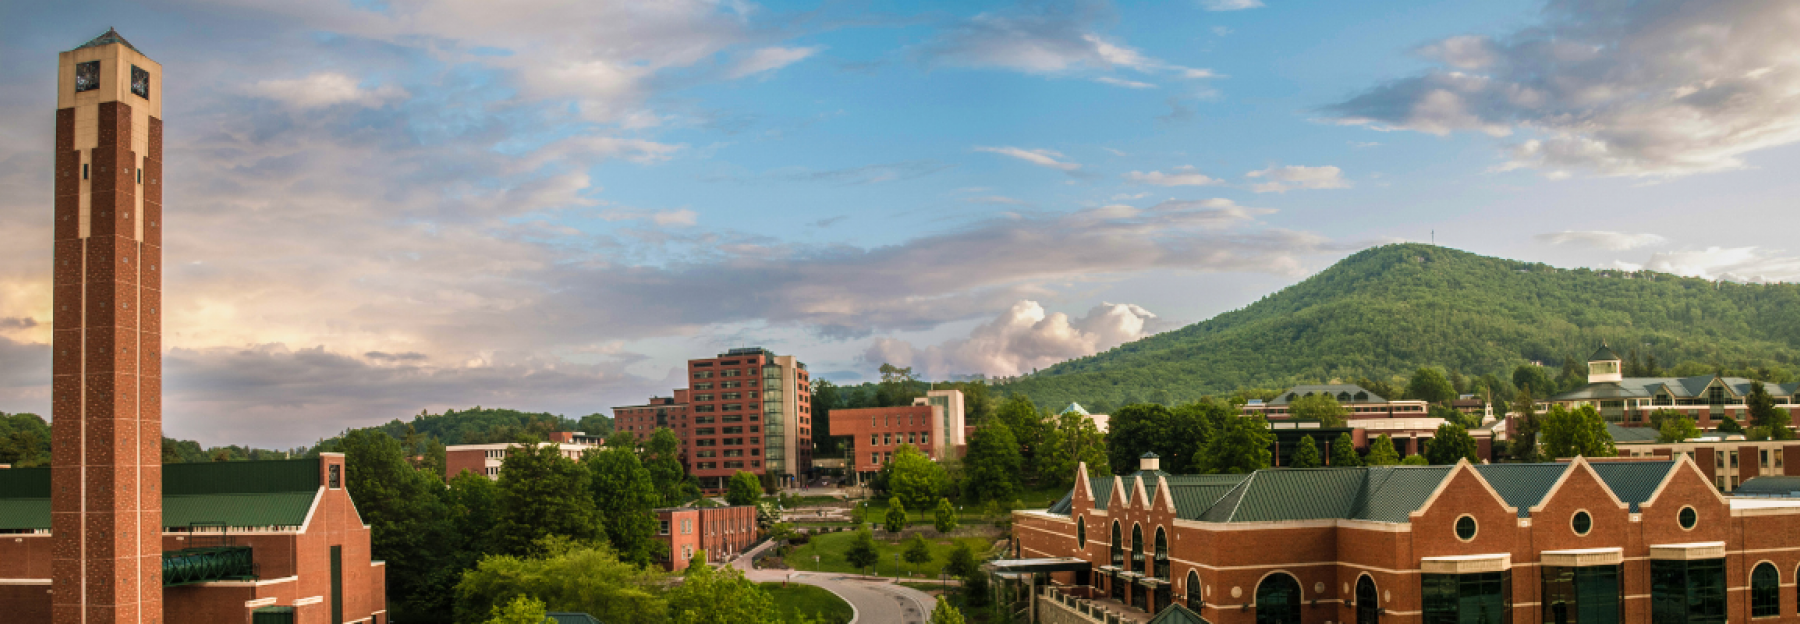 Campus scenic looking towards the bell tower in the spring